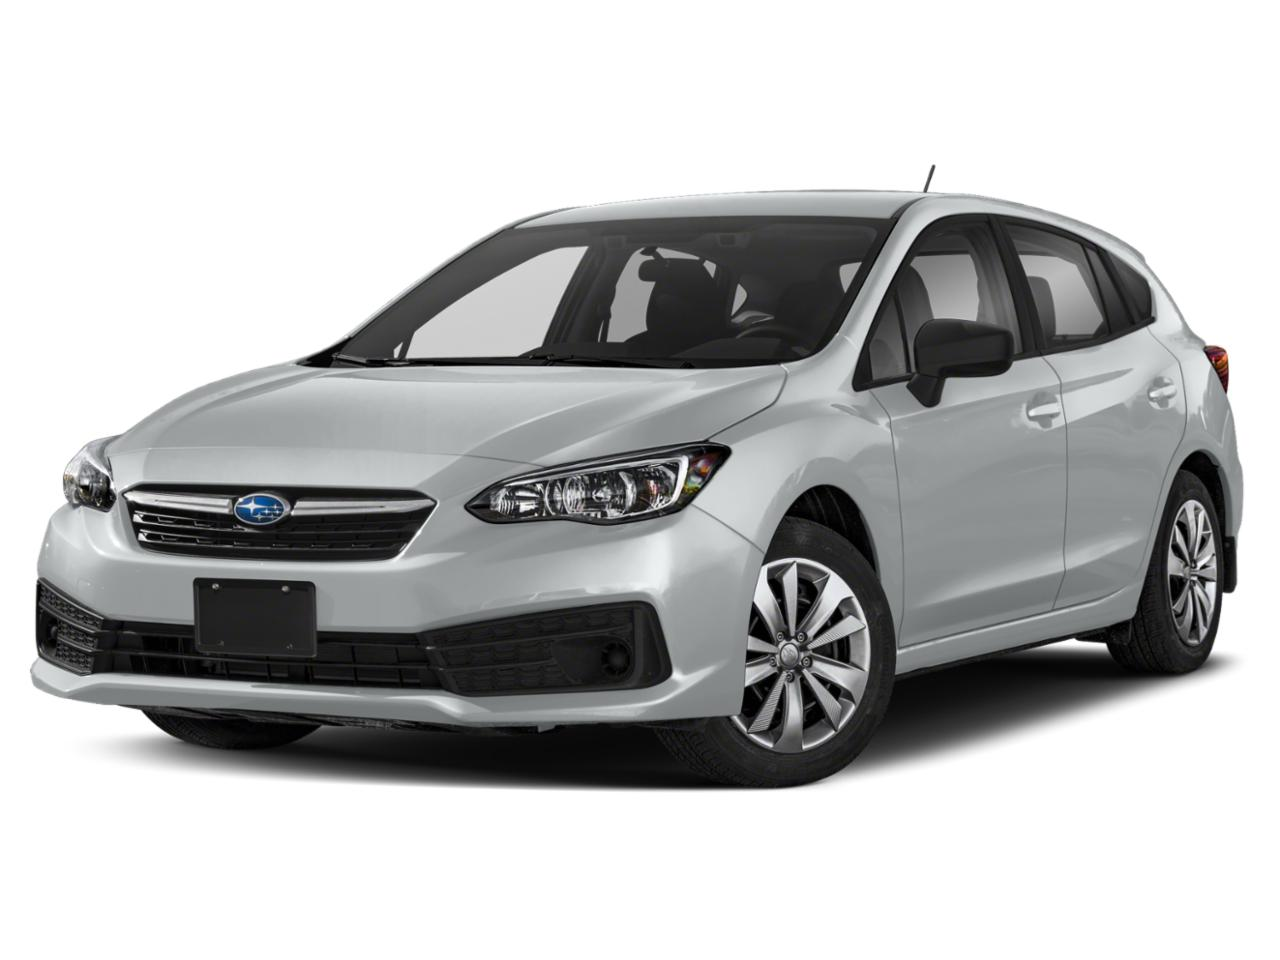 2020 Subaru Impreza Vehicle Photo in Oshkosh, WI 54904